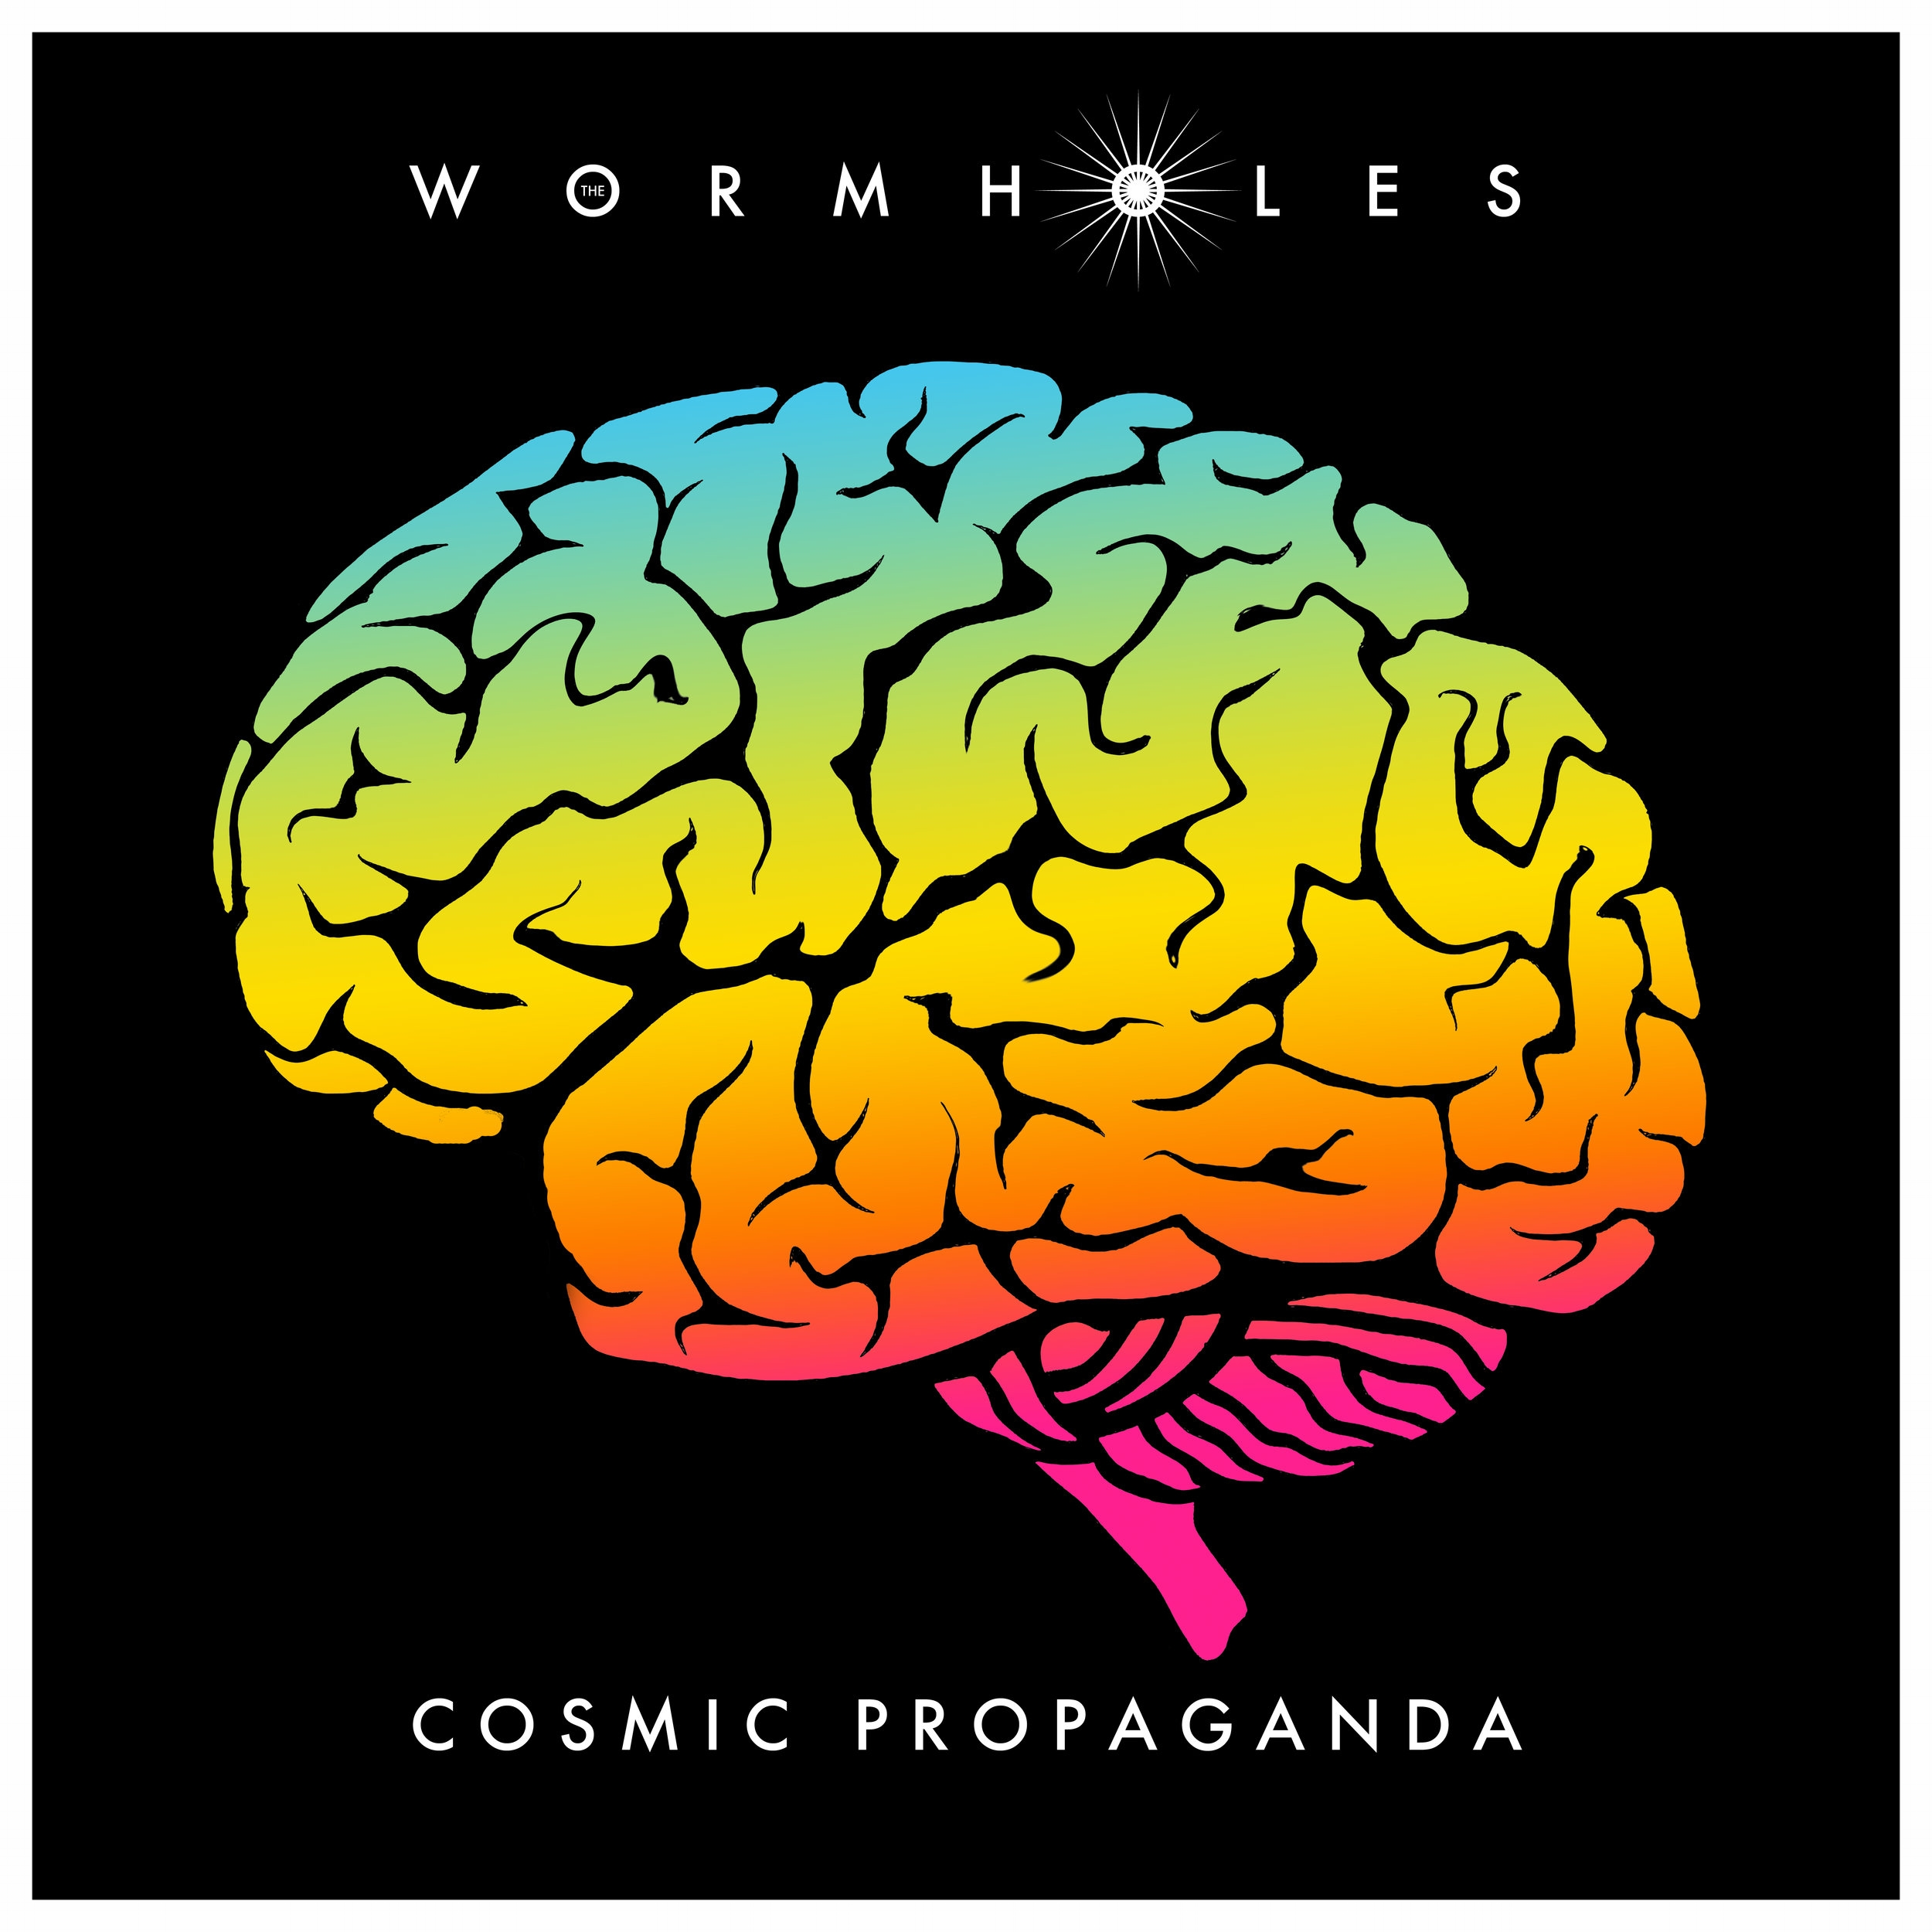 WORMHOLES Cosmic Propganda - Album Cover.jpg